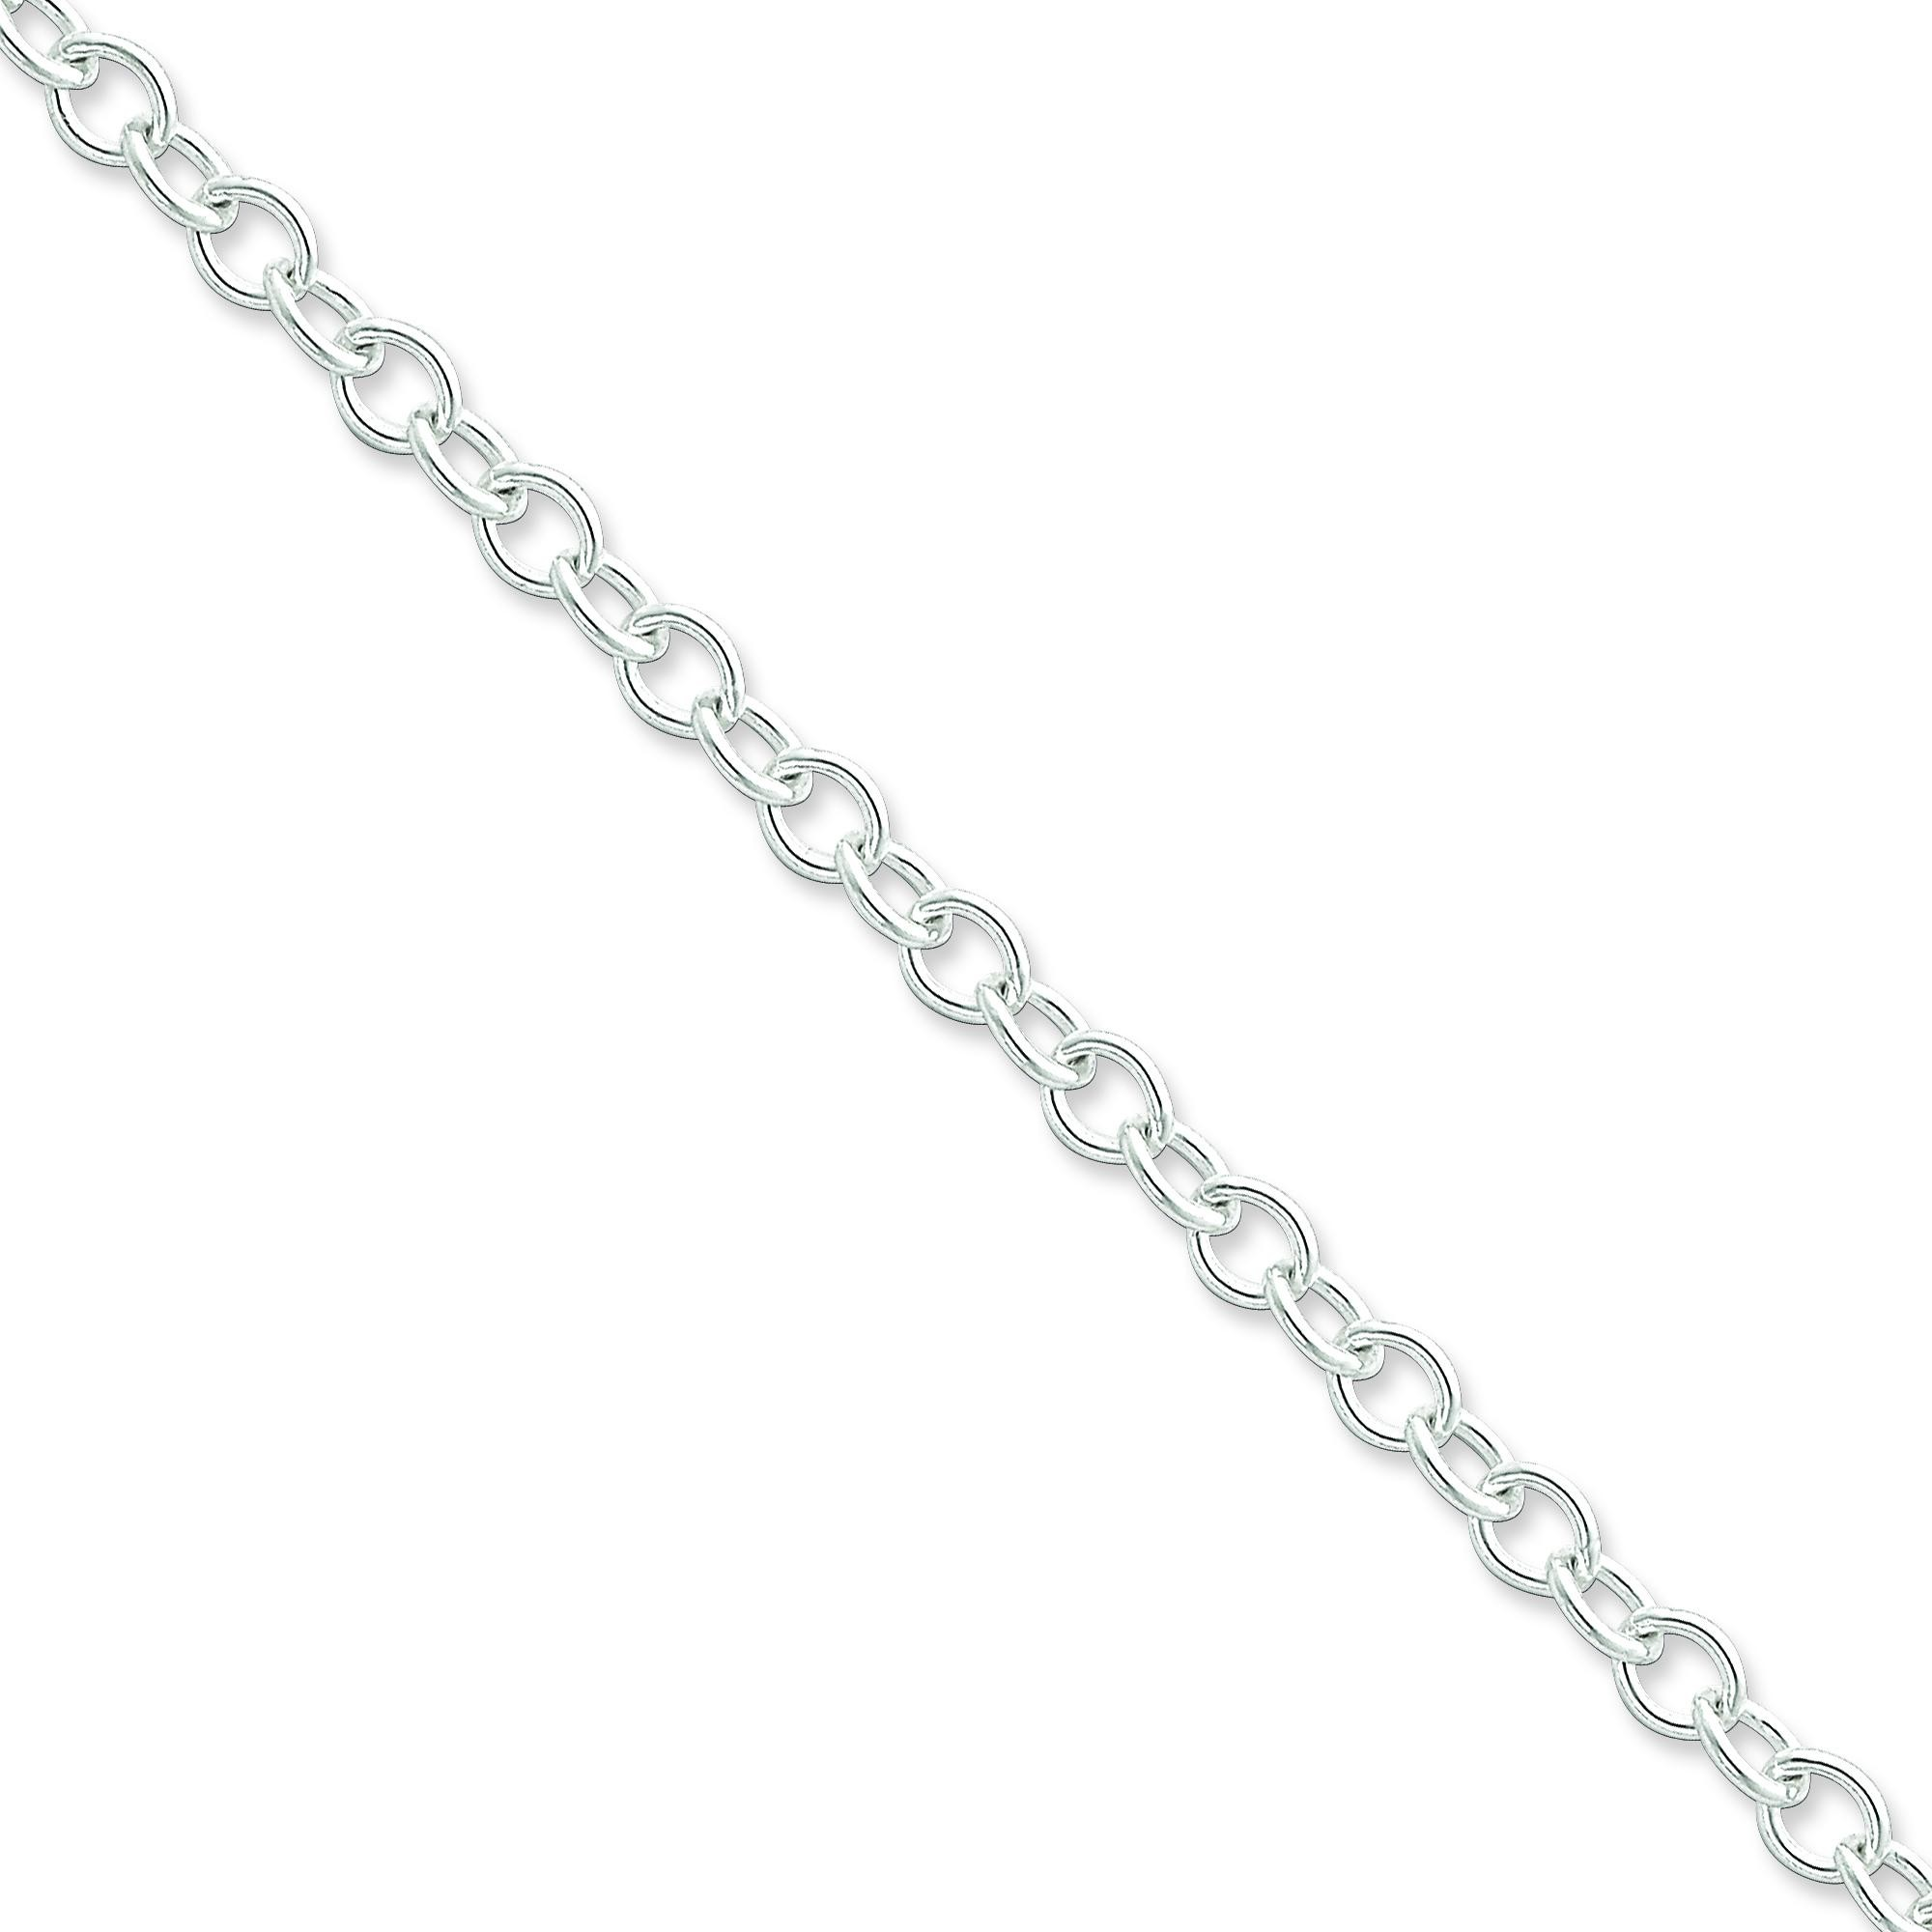 Sterling Silver 16 inch 5.75 mm Oval Cable Choker Necklace